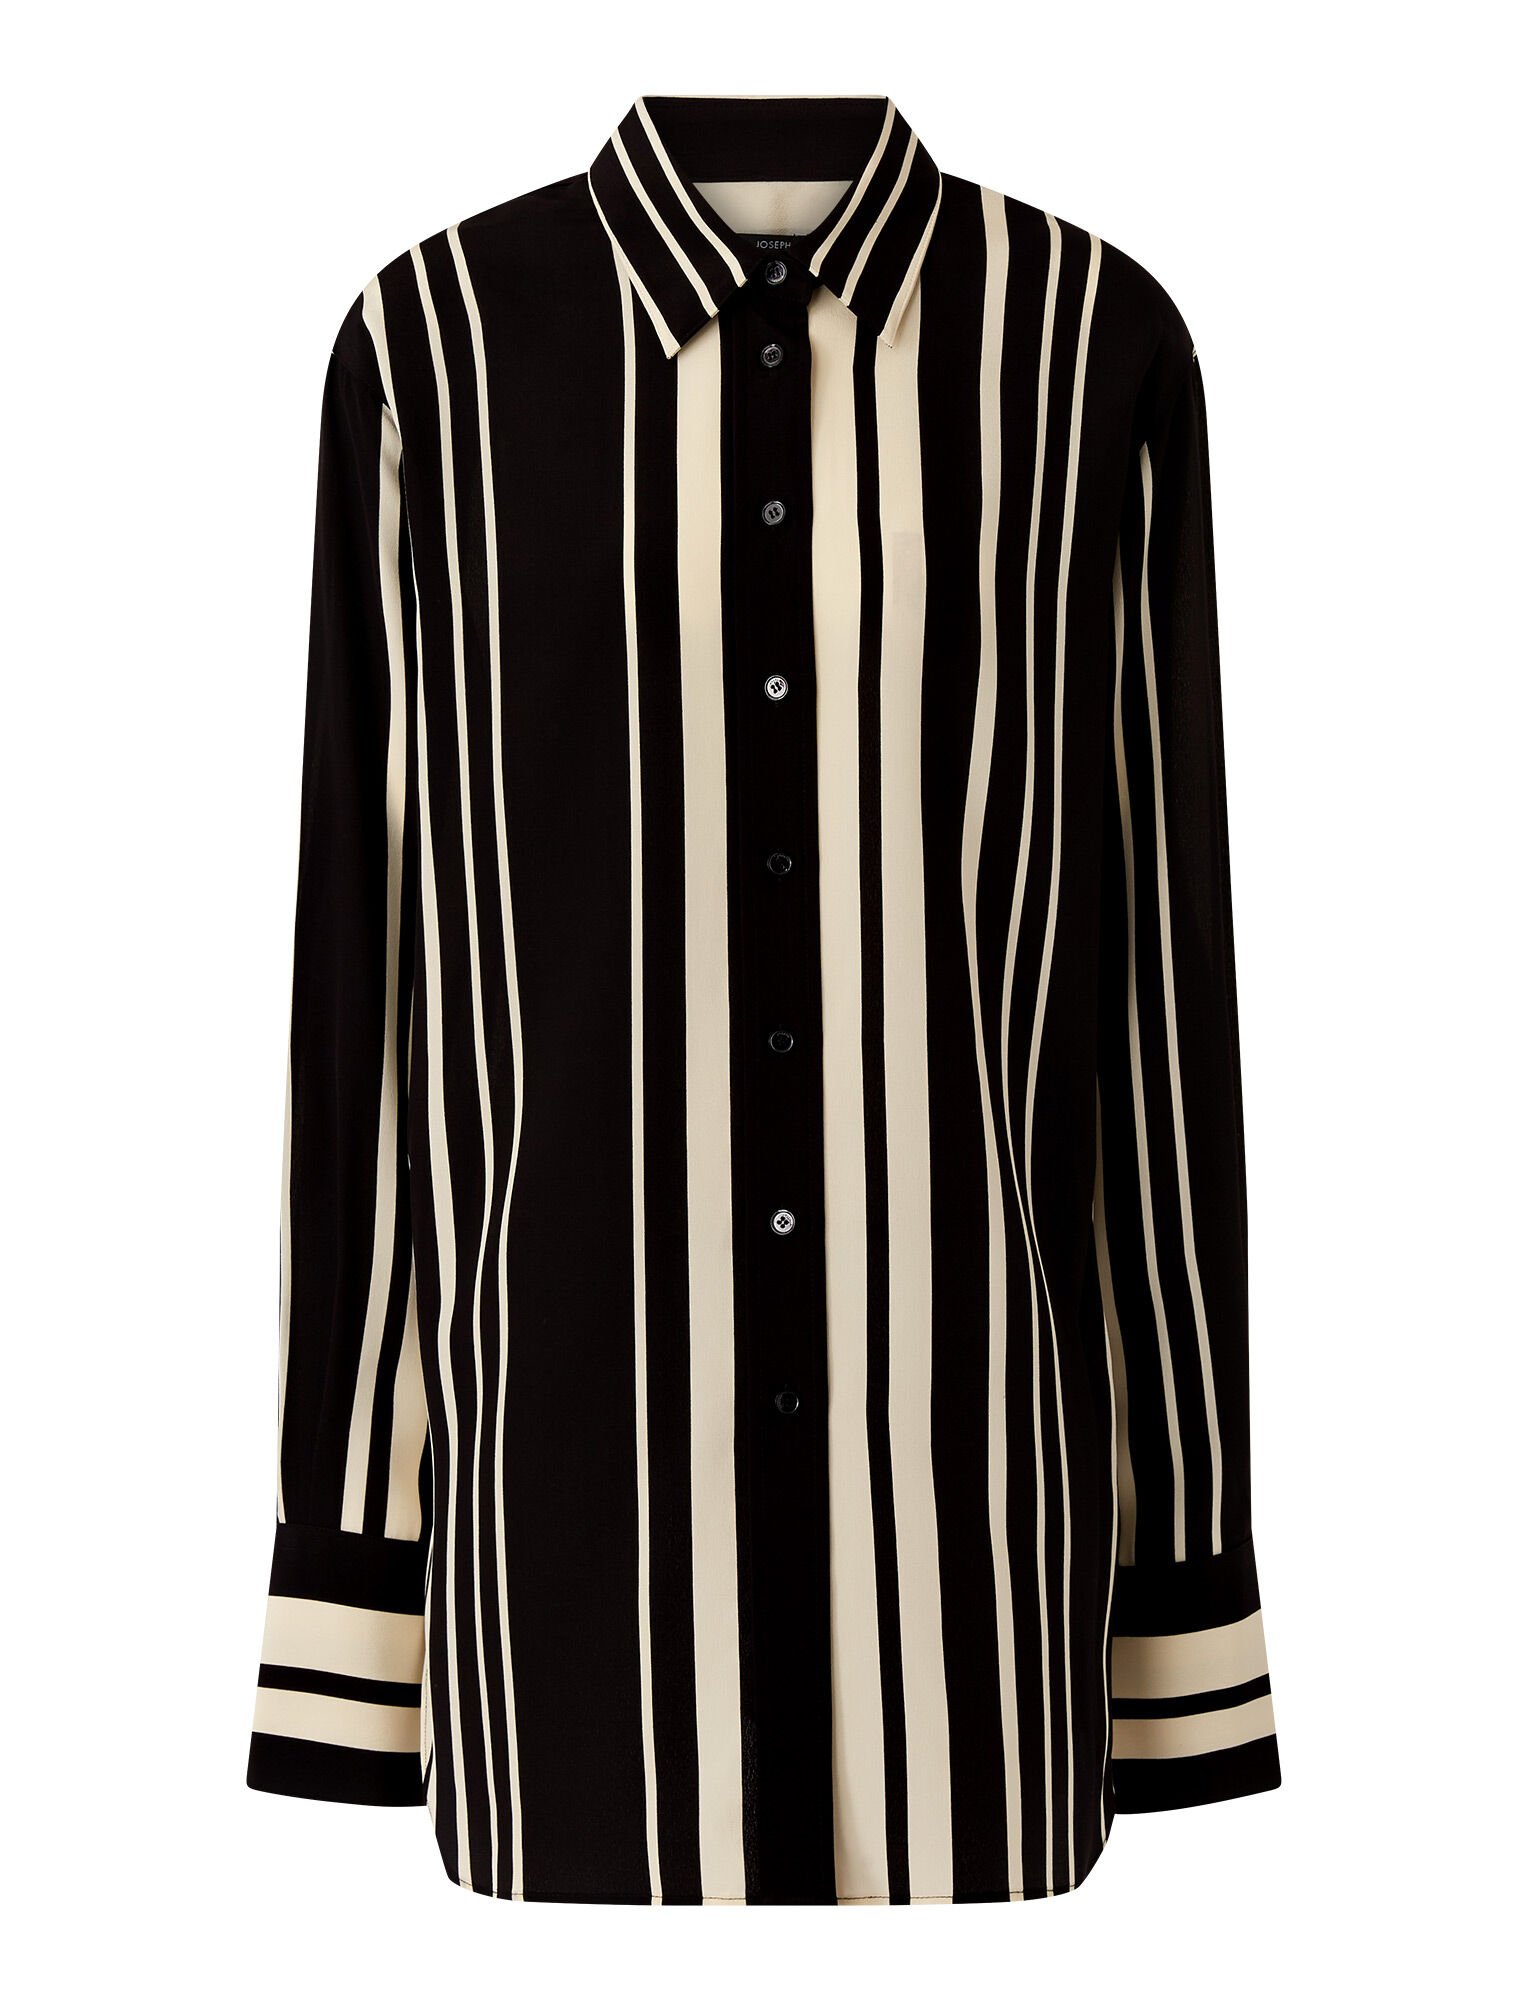 Joseph, Silk Stripes Brooks Blouse, in GREY/BLACK